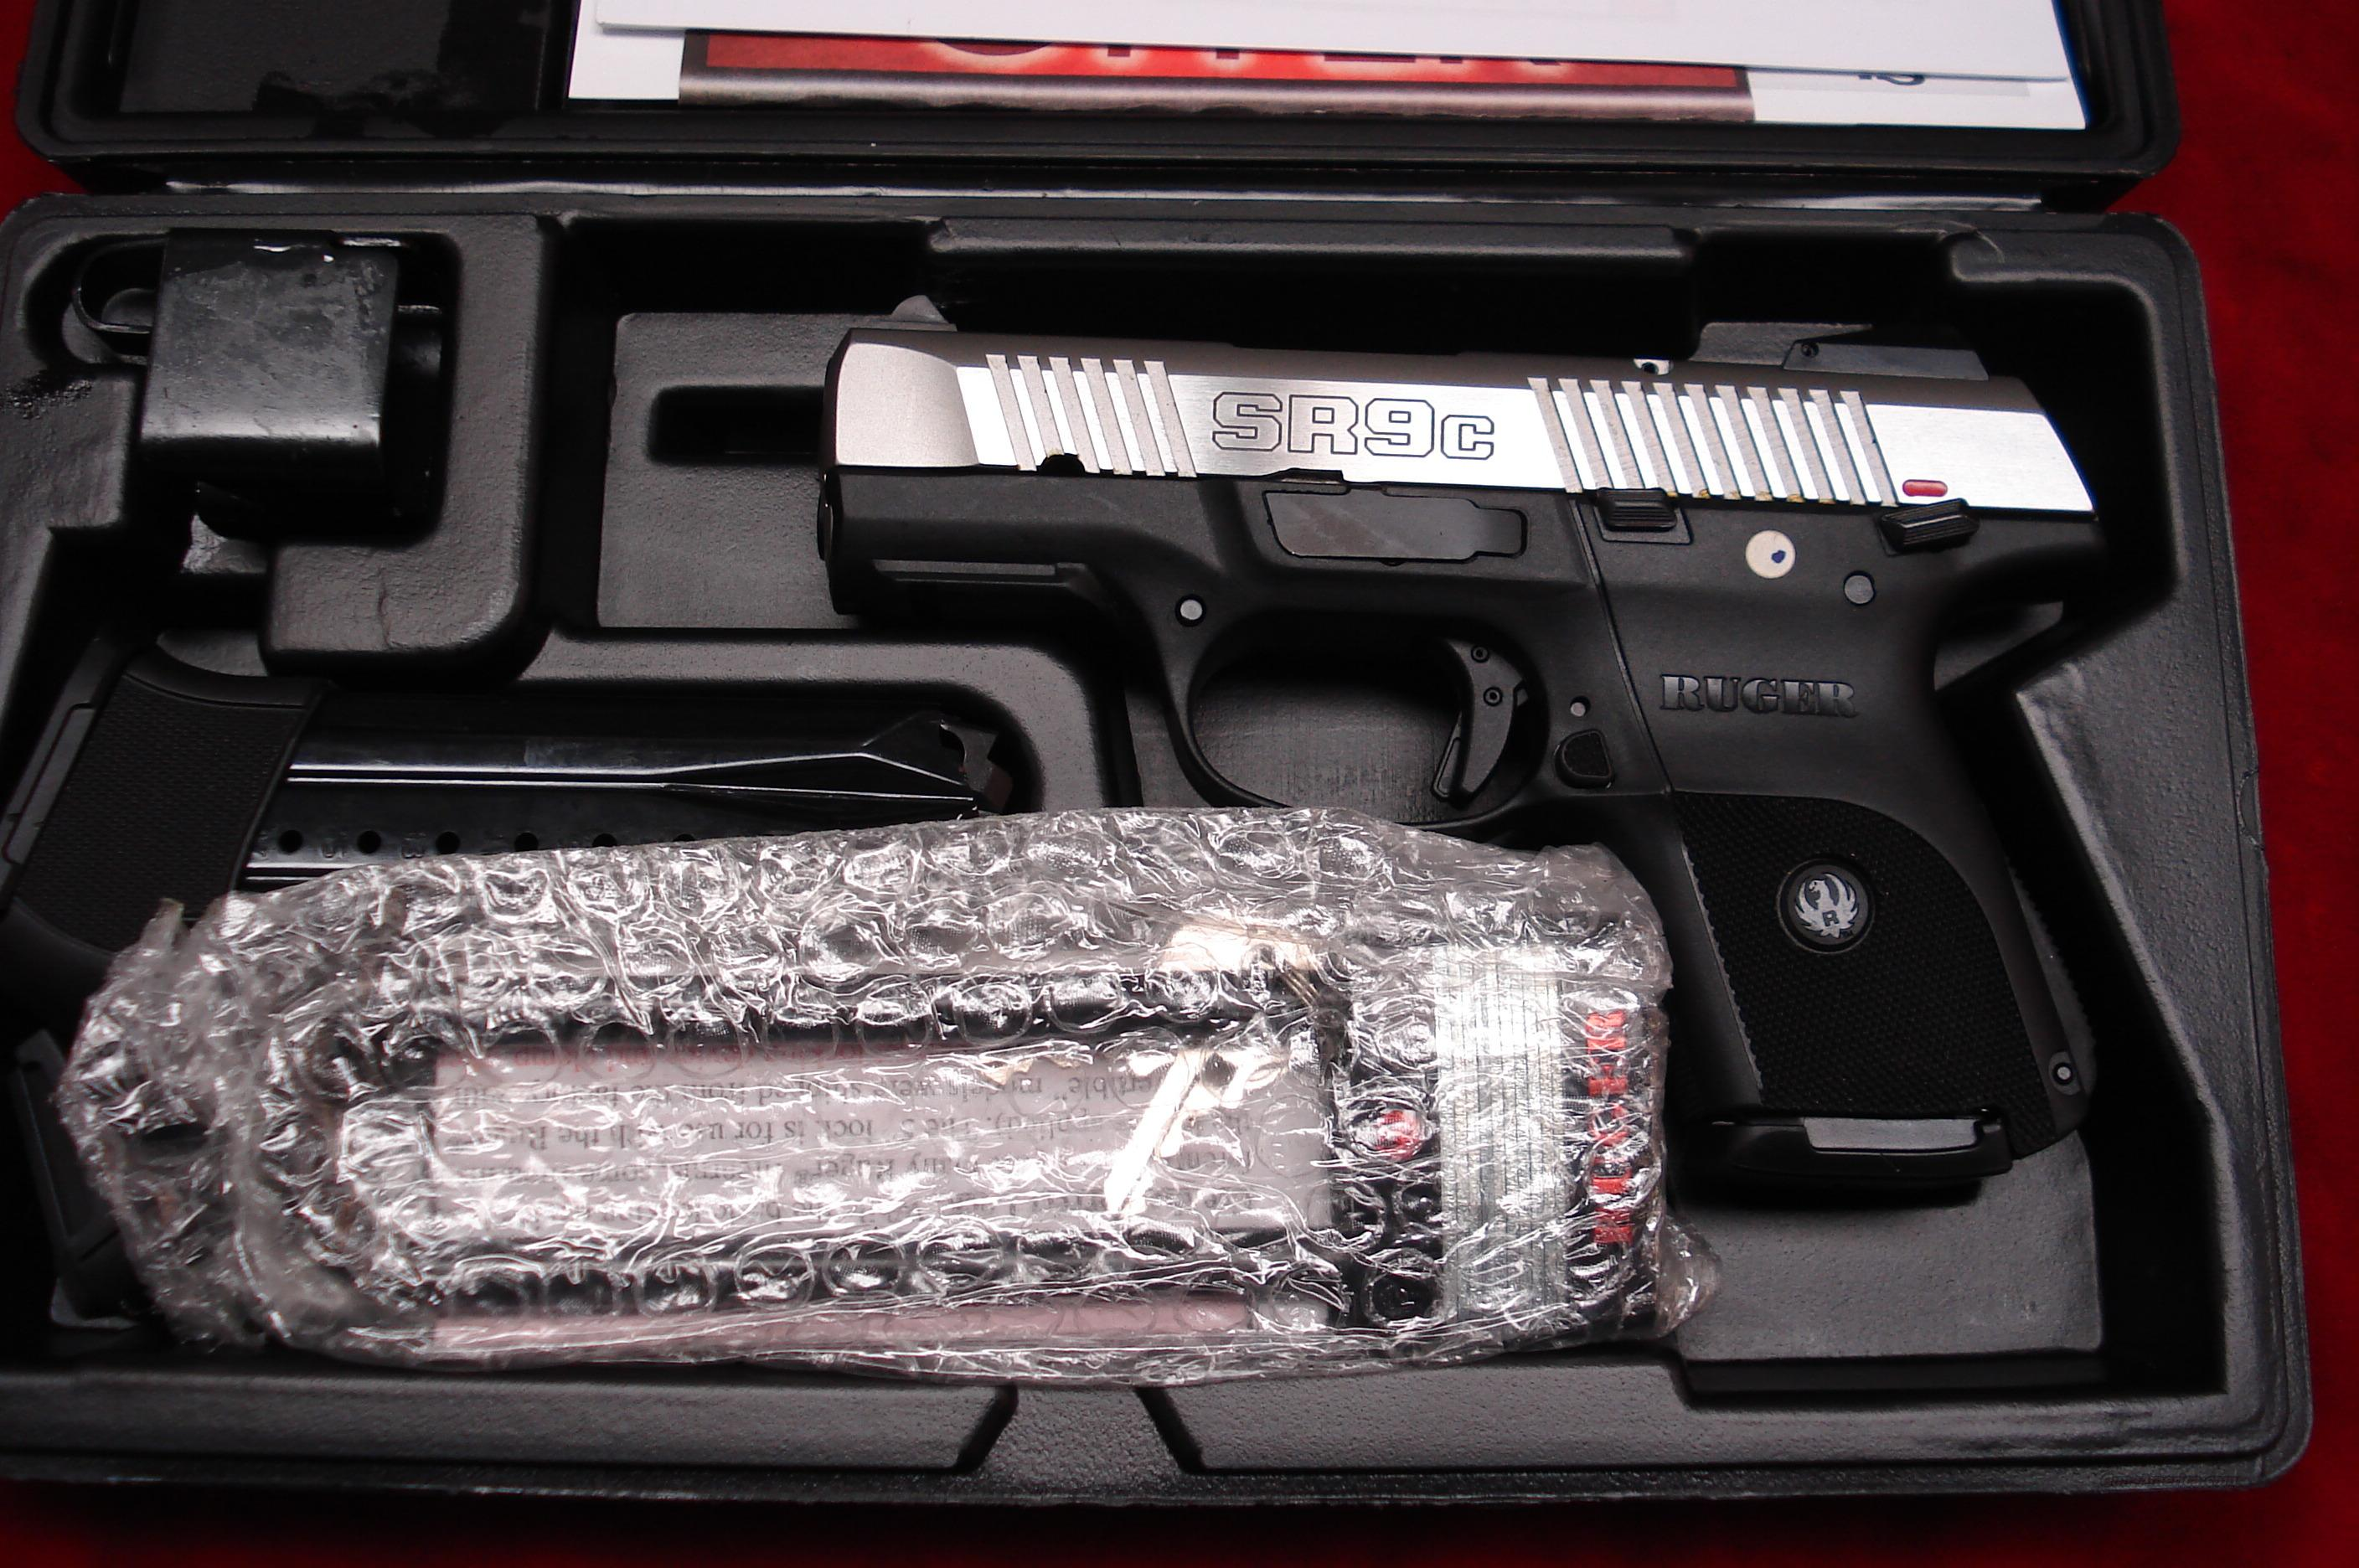 RUGER  SR9C (COMPACT) STAINLESS NEW (IN STOCK)! (KSR9C)   Guns > Pistols > Ruger Semi-Auto Pistols > SR Family > SR9C